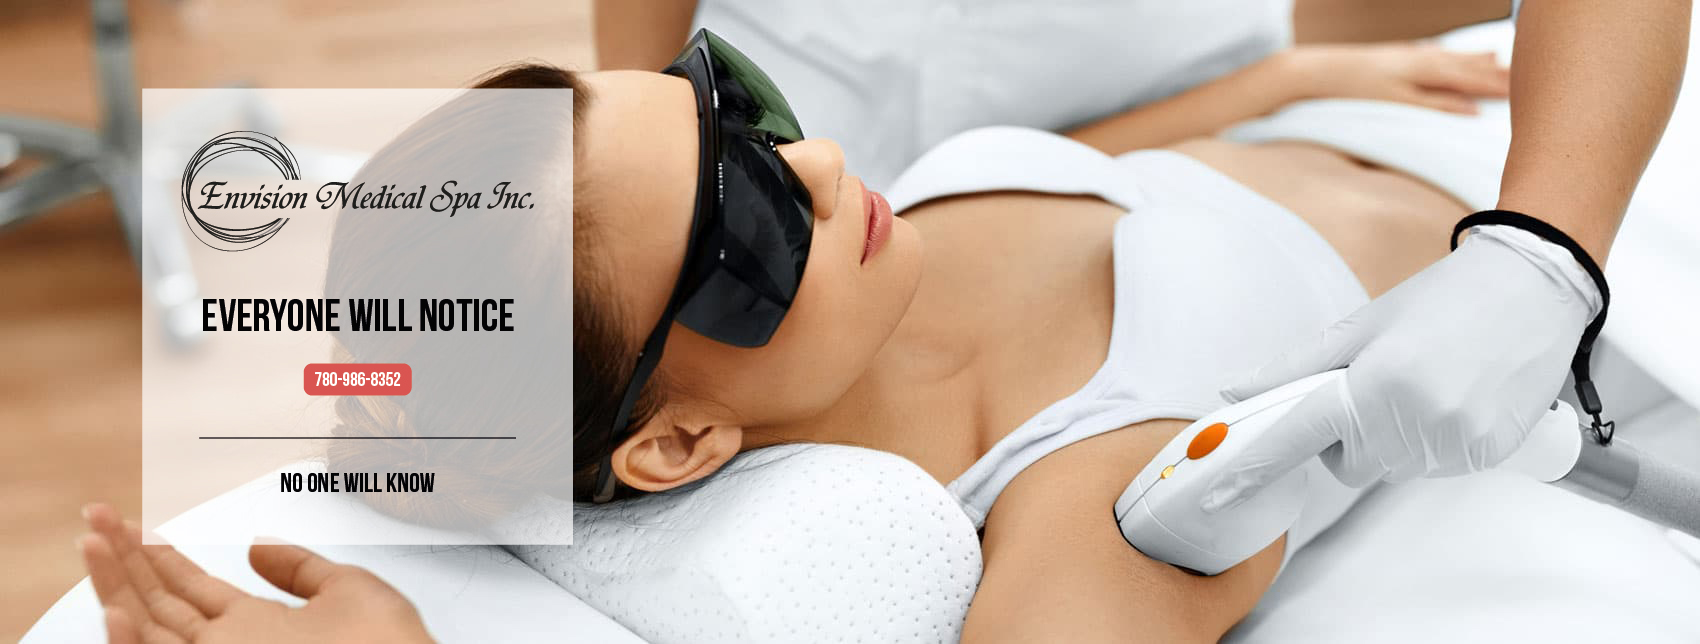 Hair removal and fat reduction are just two of the body treatments available from Envision Medical Spa